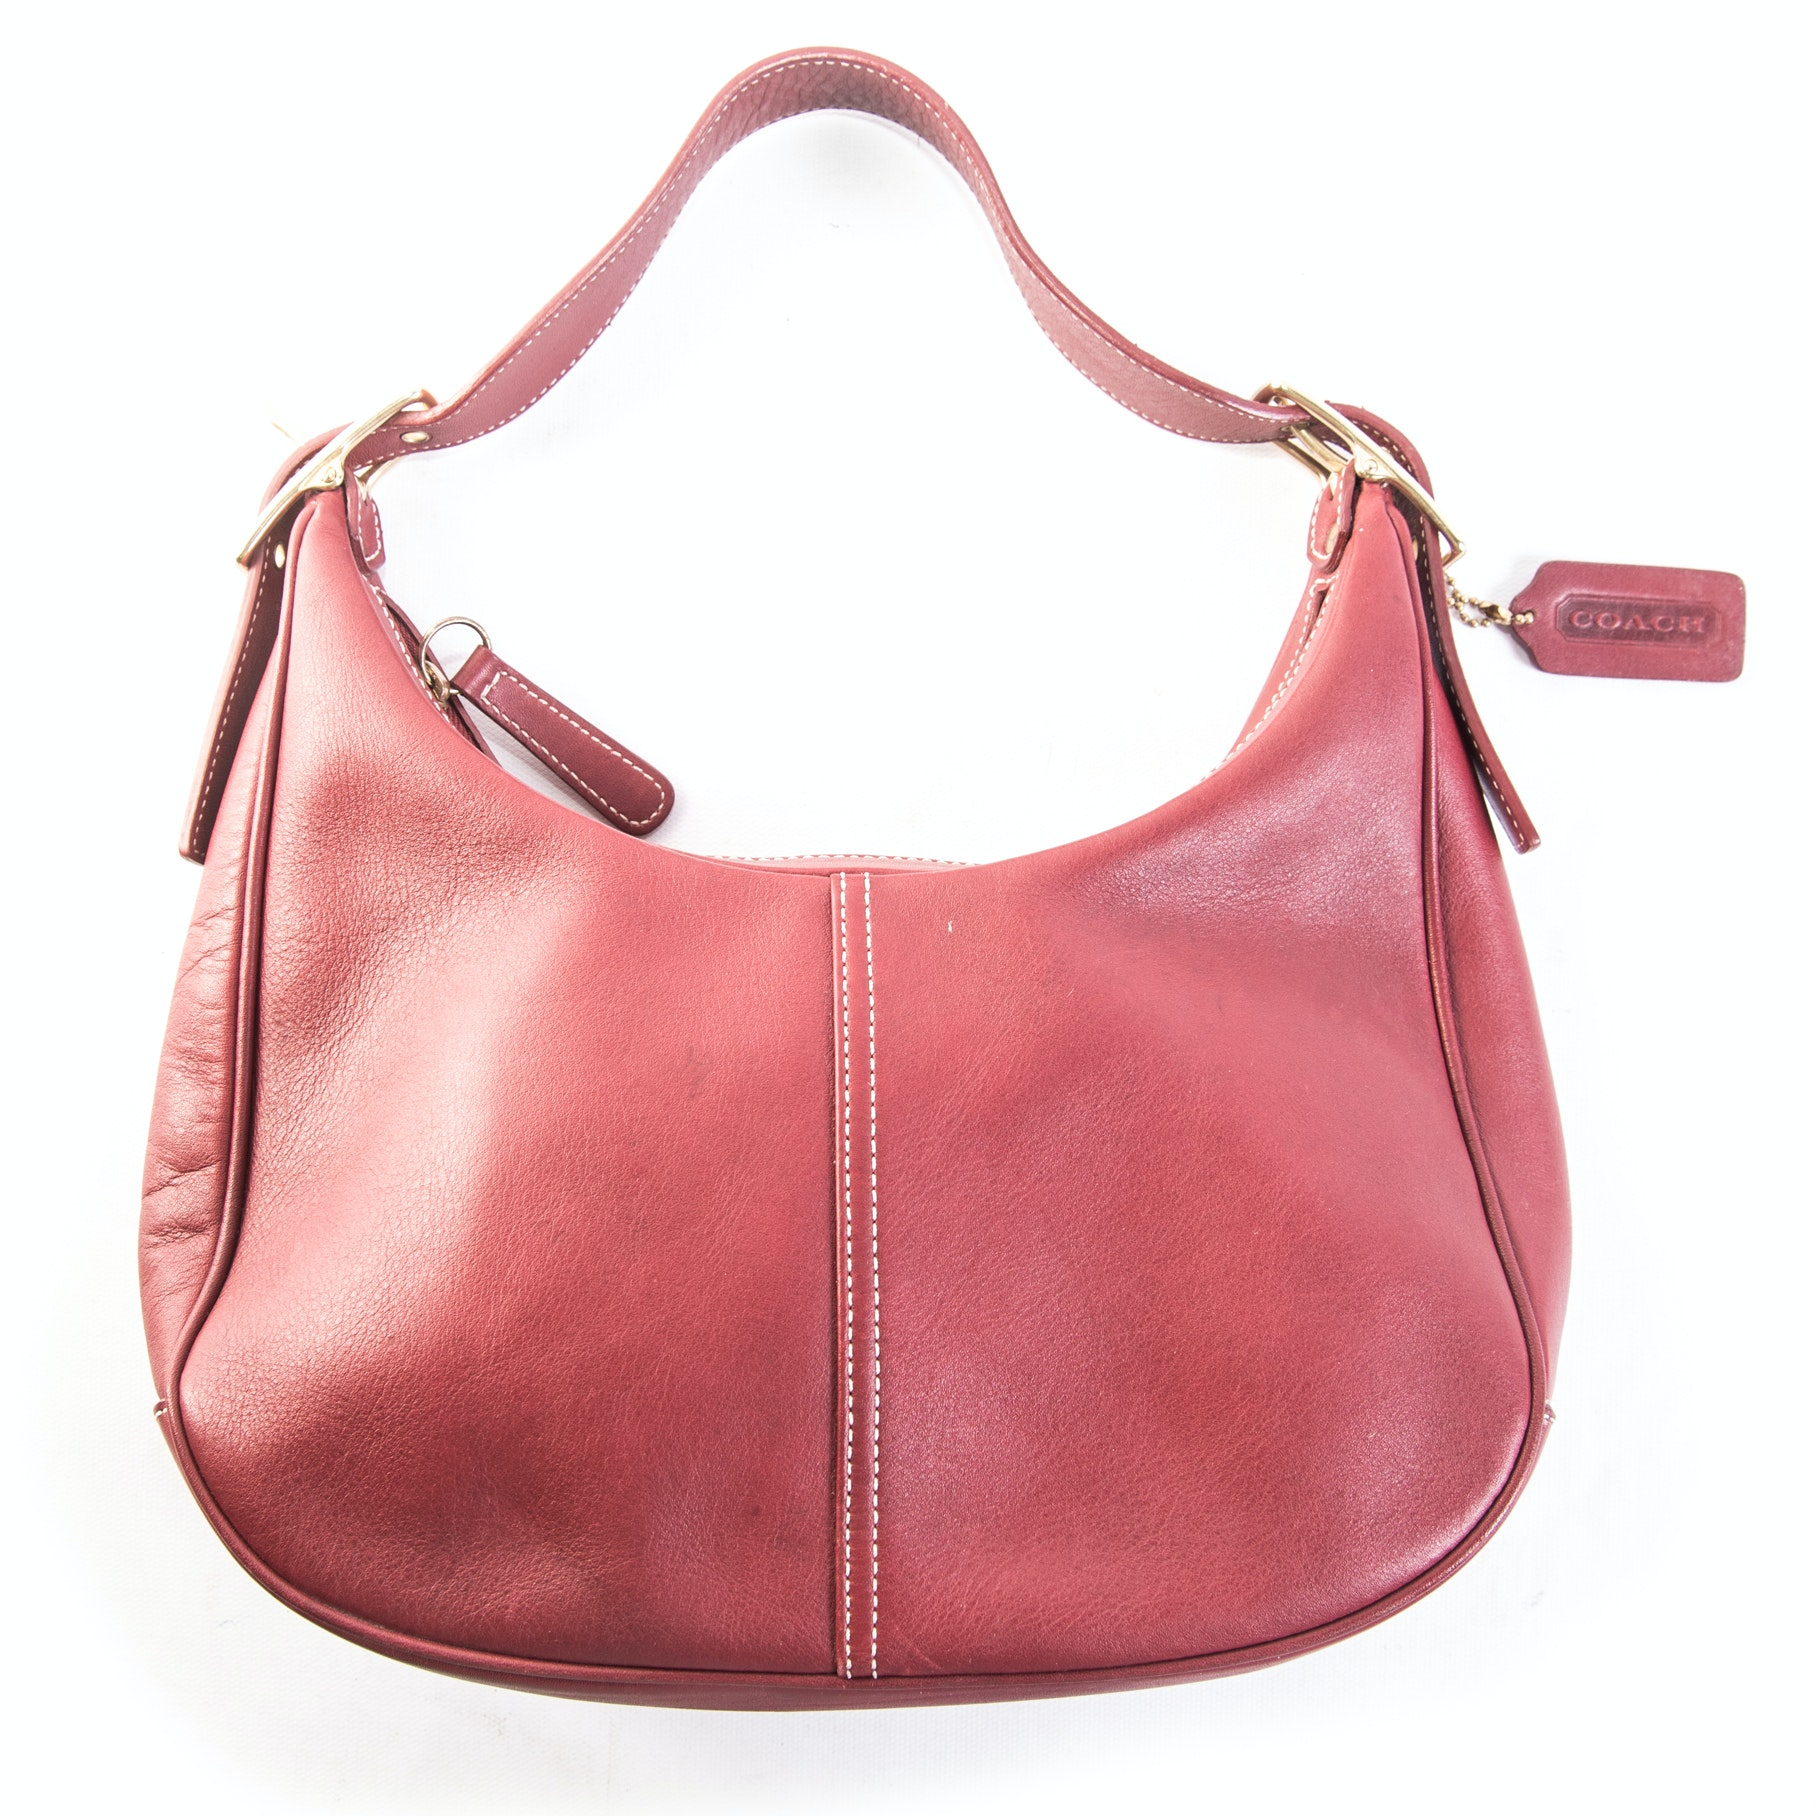 Coach Red Leather Ergomatic Handbag